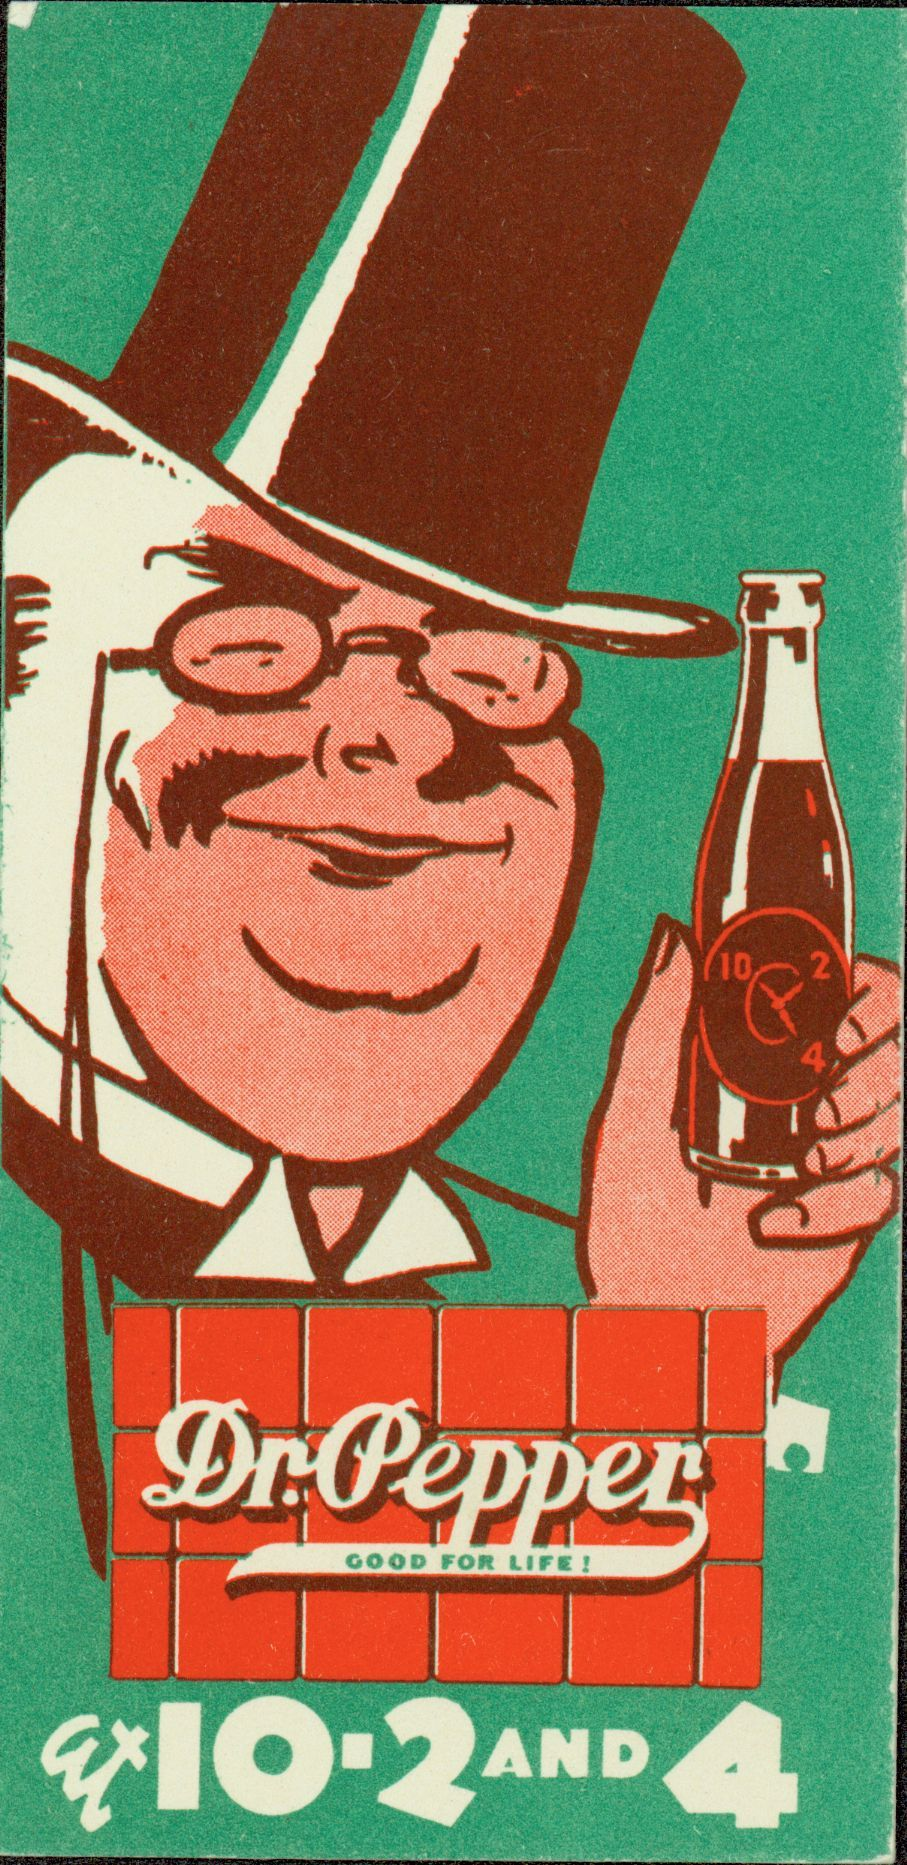 dr pepper advertisements